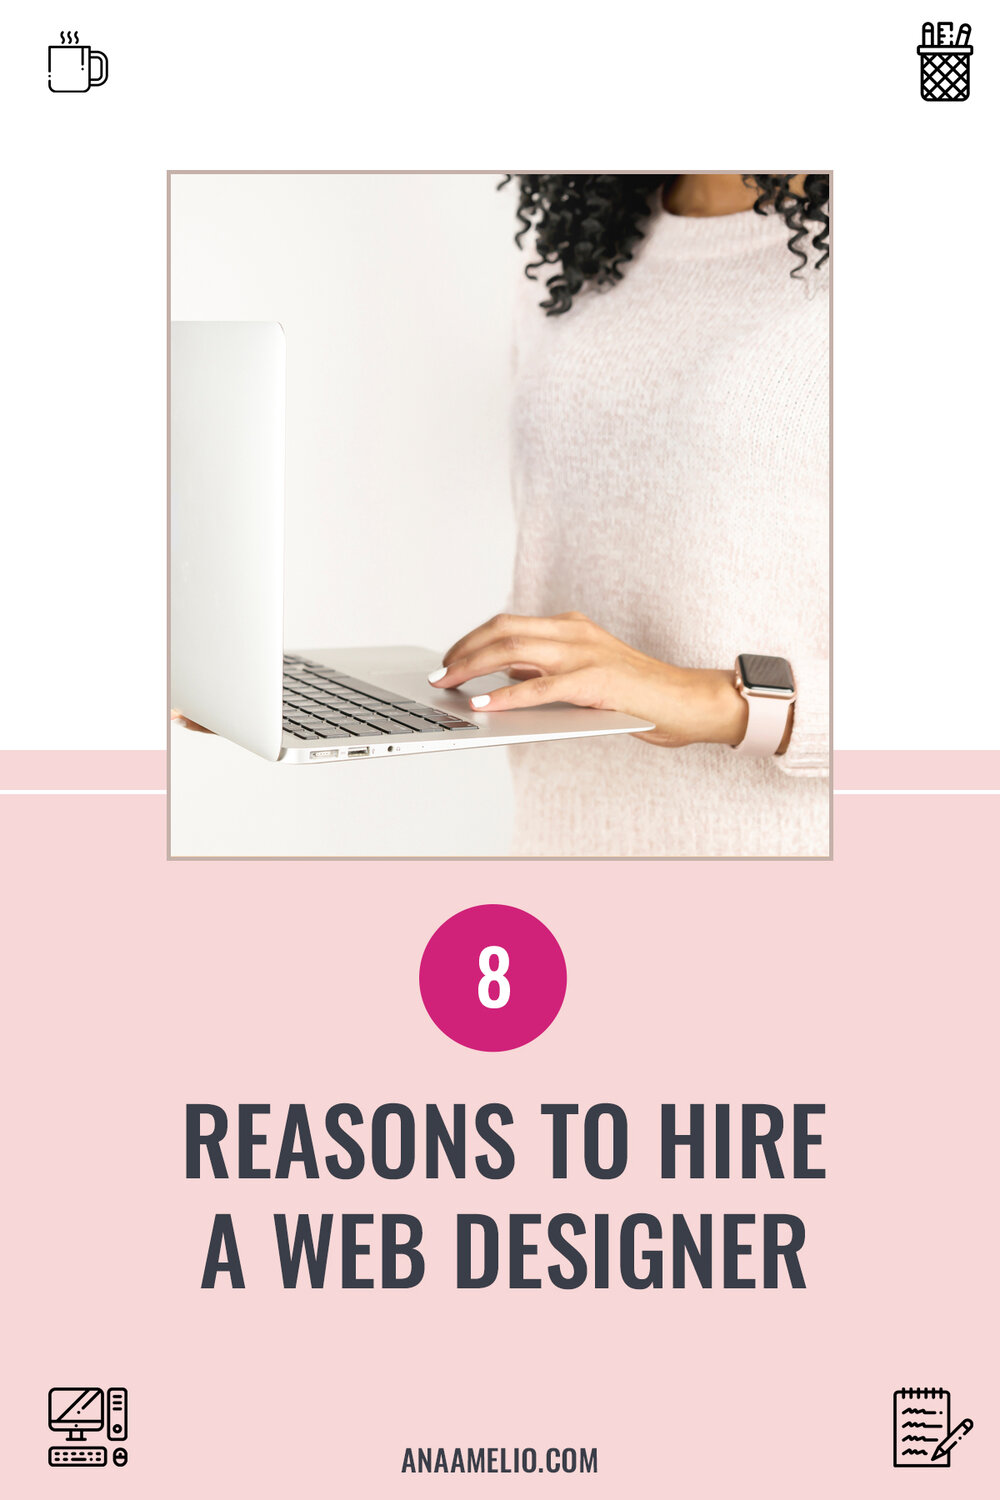 Thinking about hiring a web designer? Learn 8 reasons why you should invest in a professional design instead of DIY-ing your website. #brandedbossbabe #squarespacedesigner #hiringawebdesigner